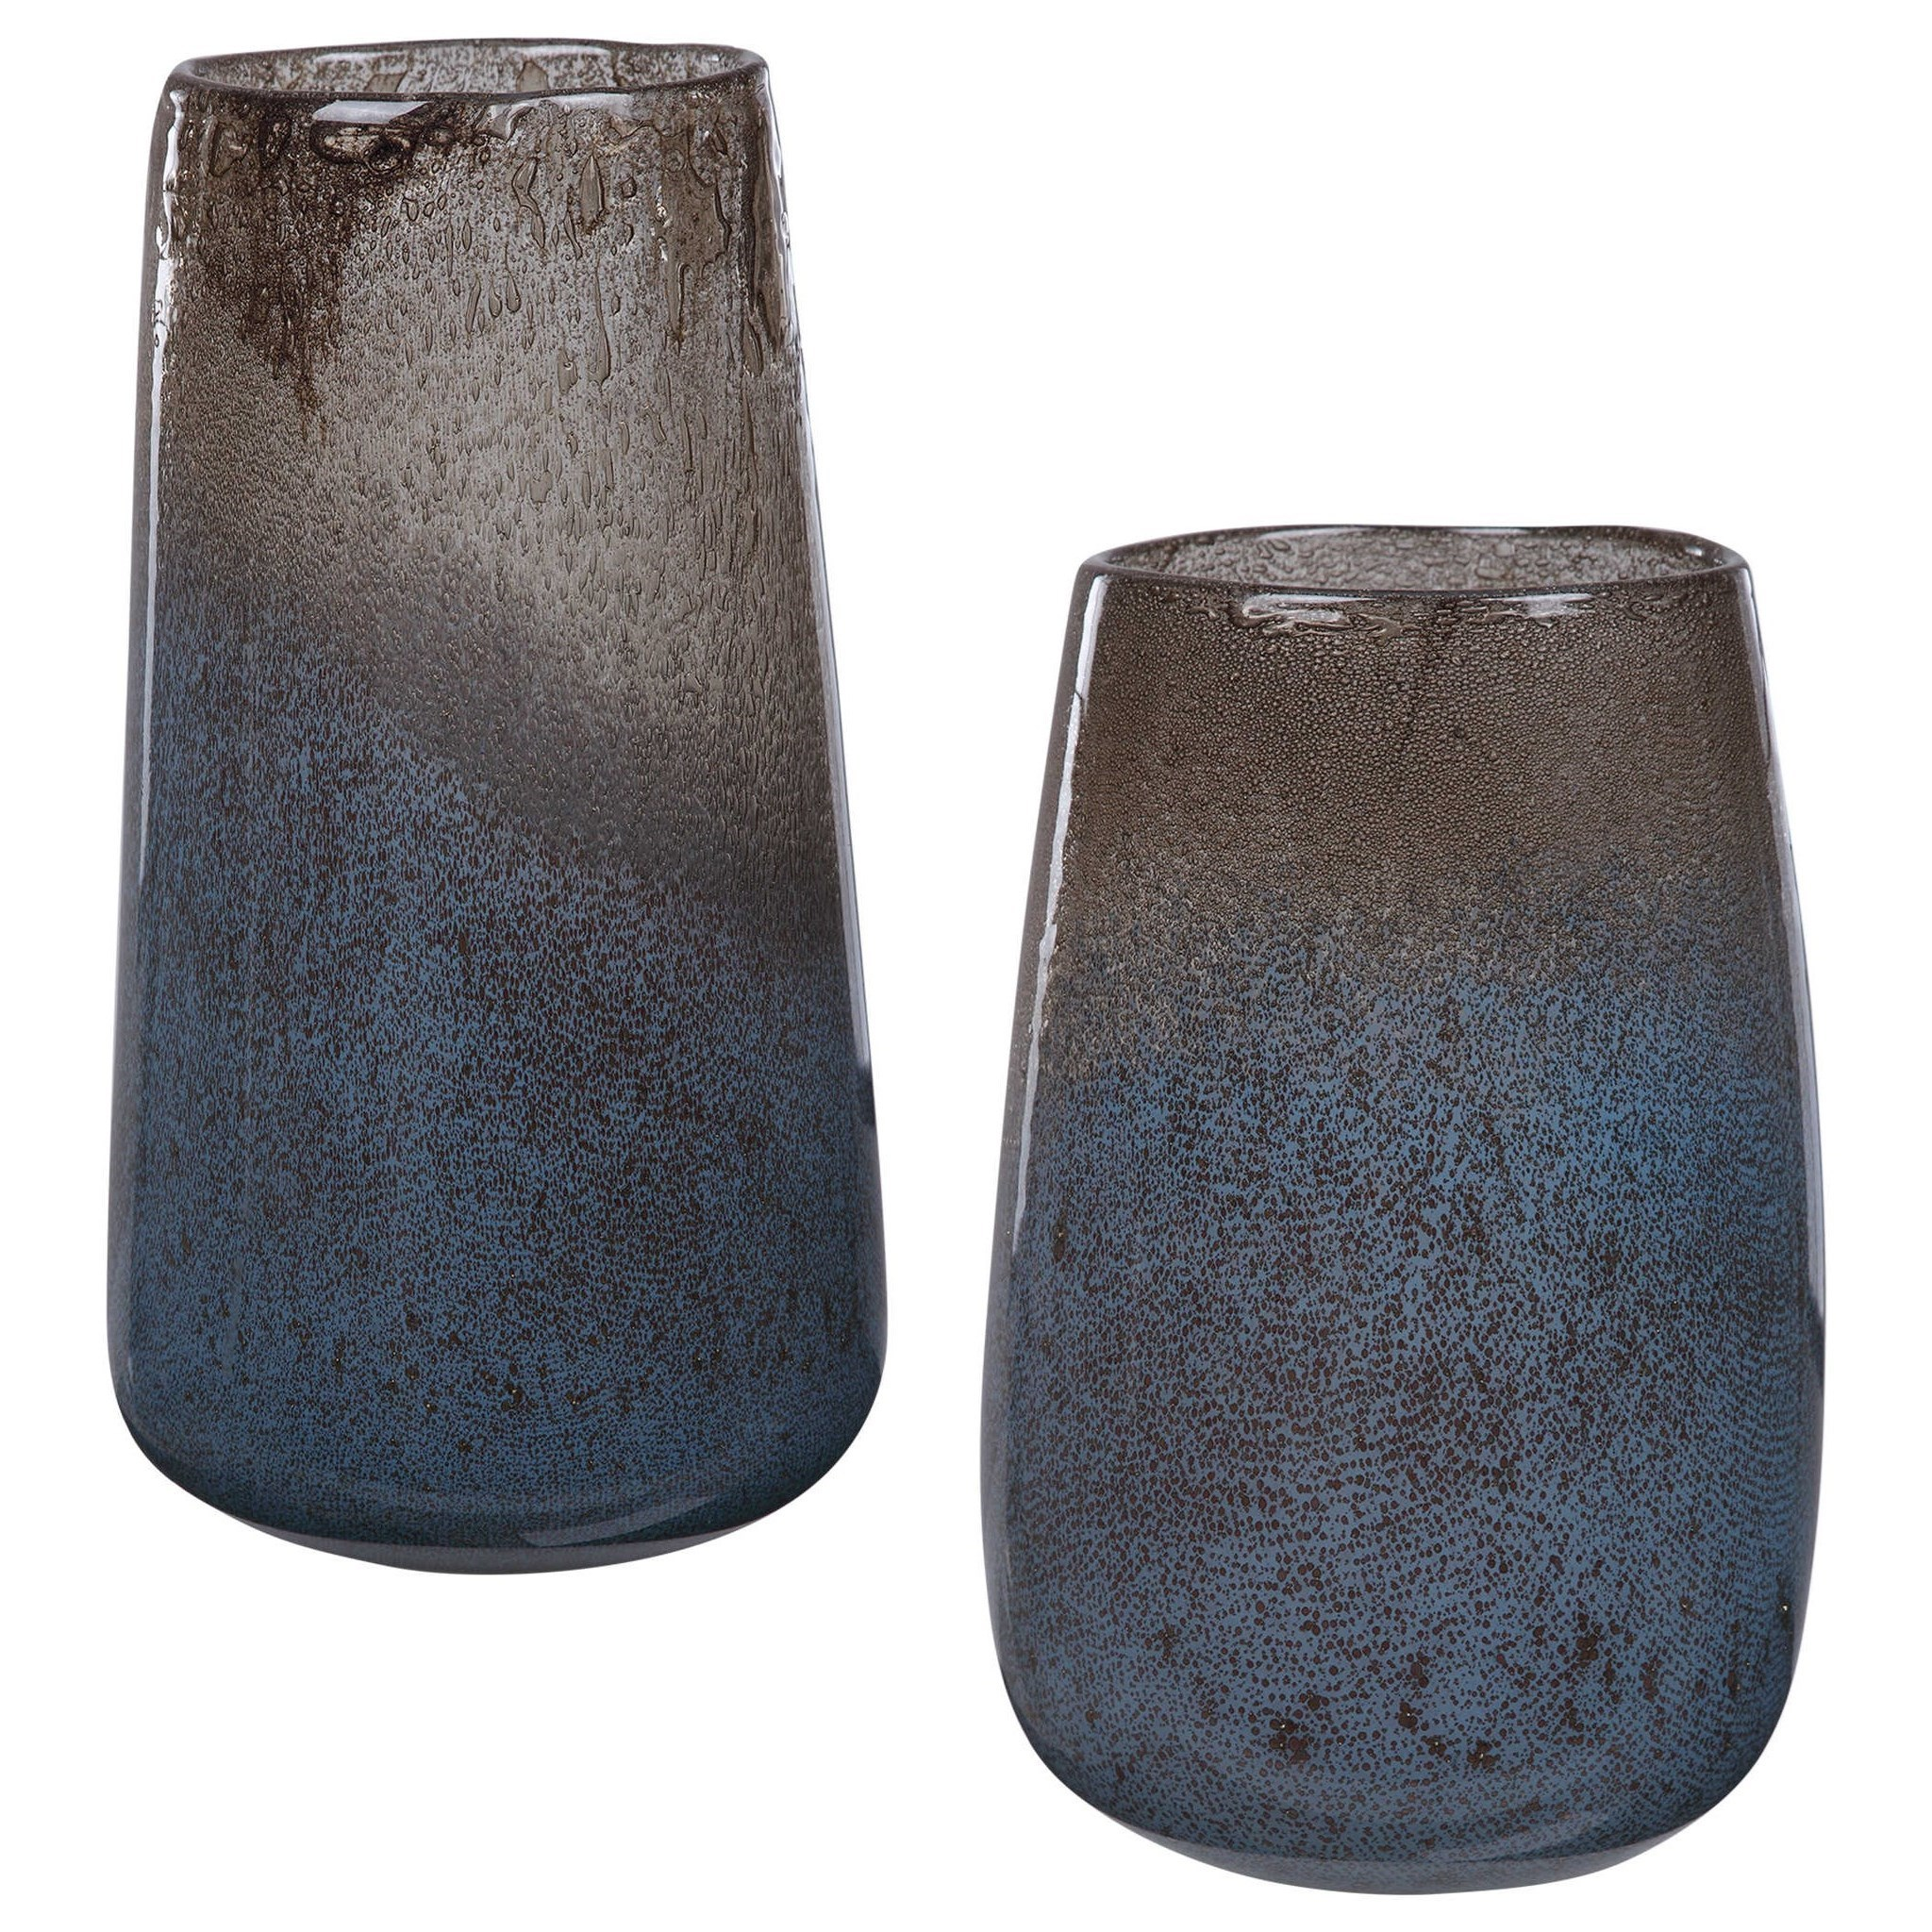 Accessories - Vases and Urns Ione Seeded Glass Vases, S/2 by Uttermost at Mueller Furniture